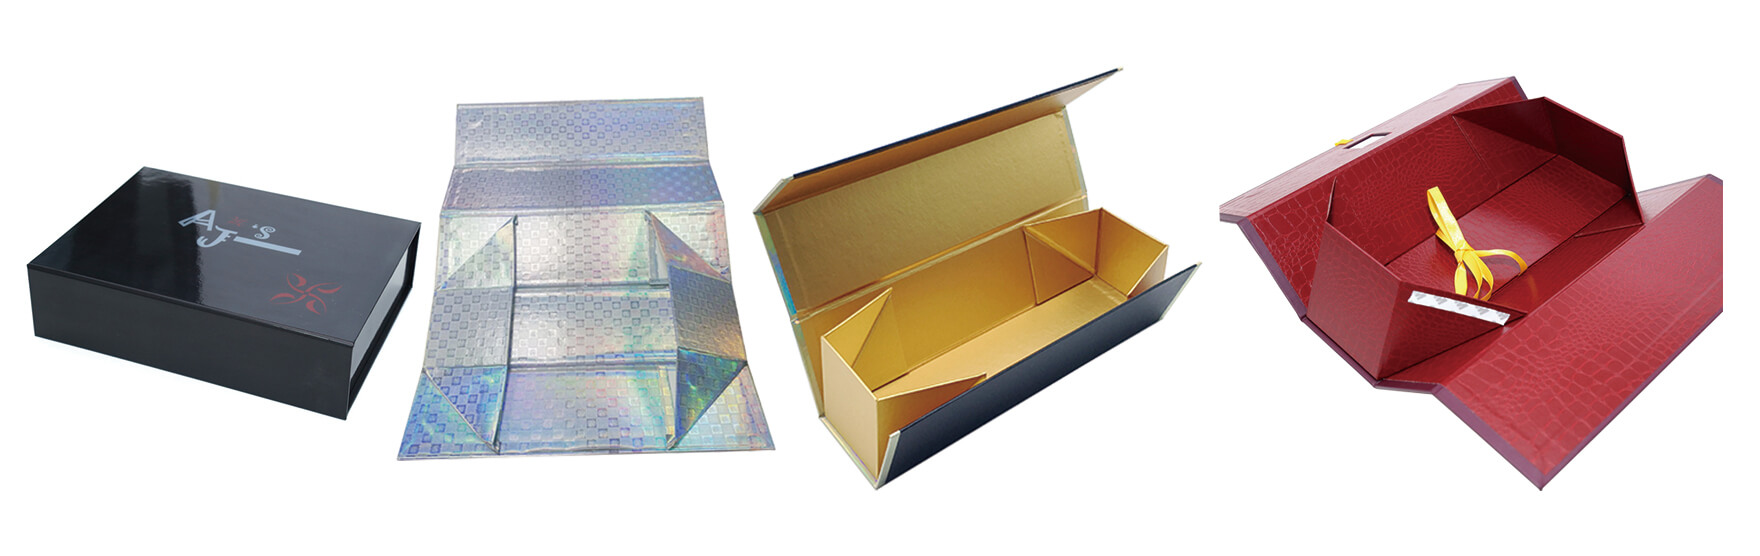 Customizable Collapsible Rigid Gift Box For Wine Bottles